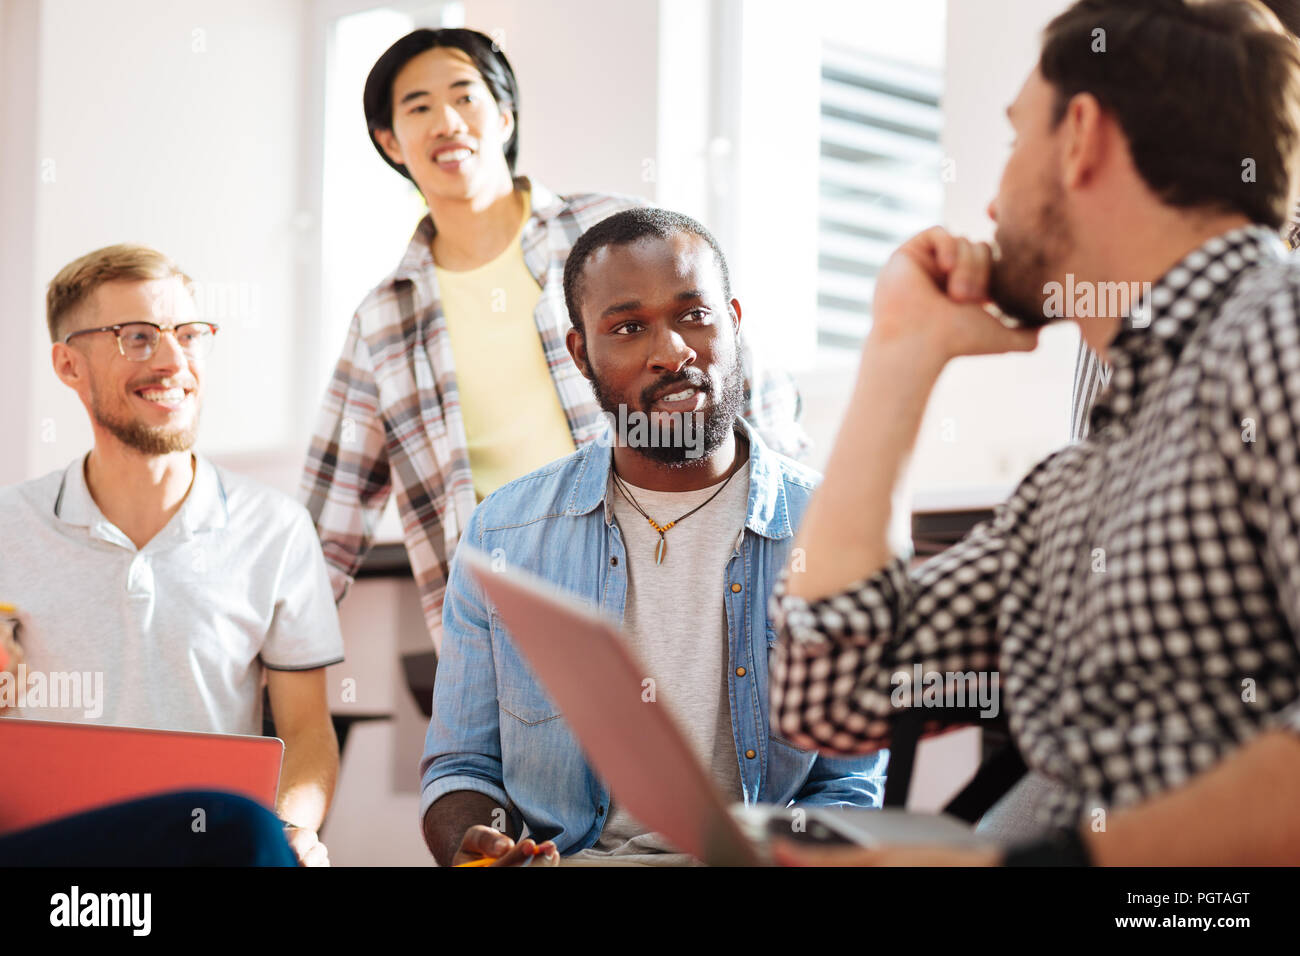 Clever young men enjoying spending time together and looking interested - Stock Image